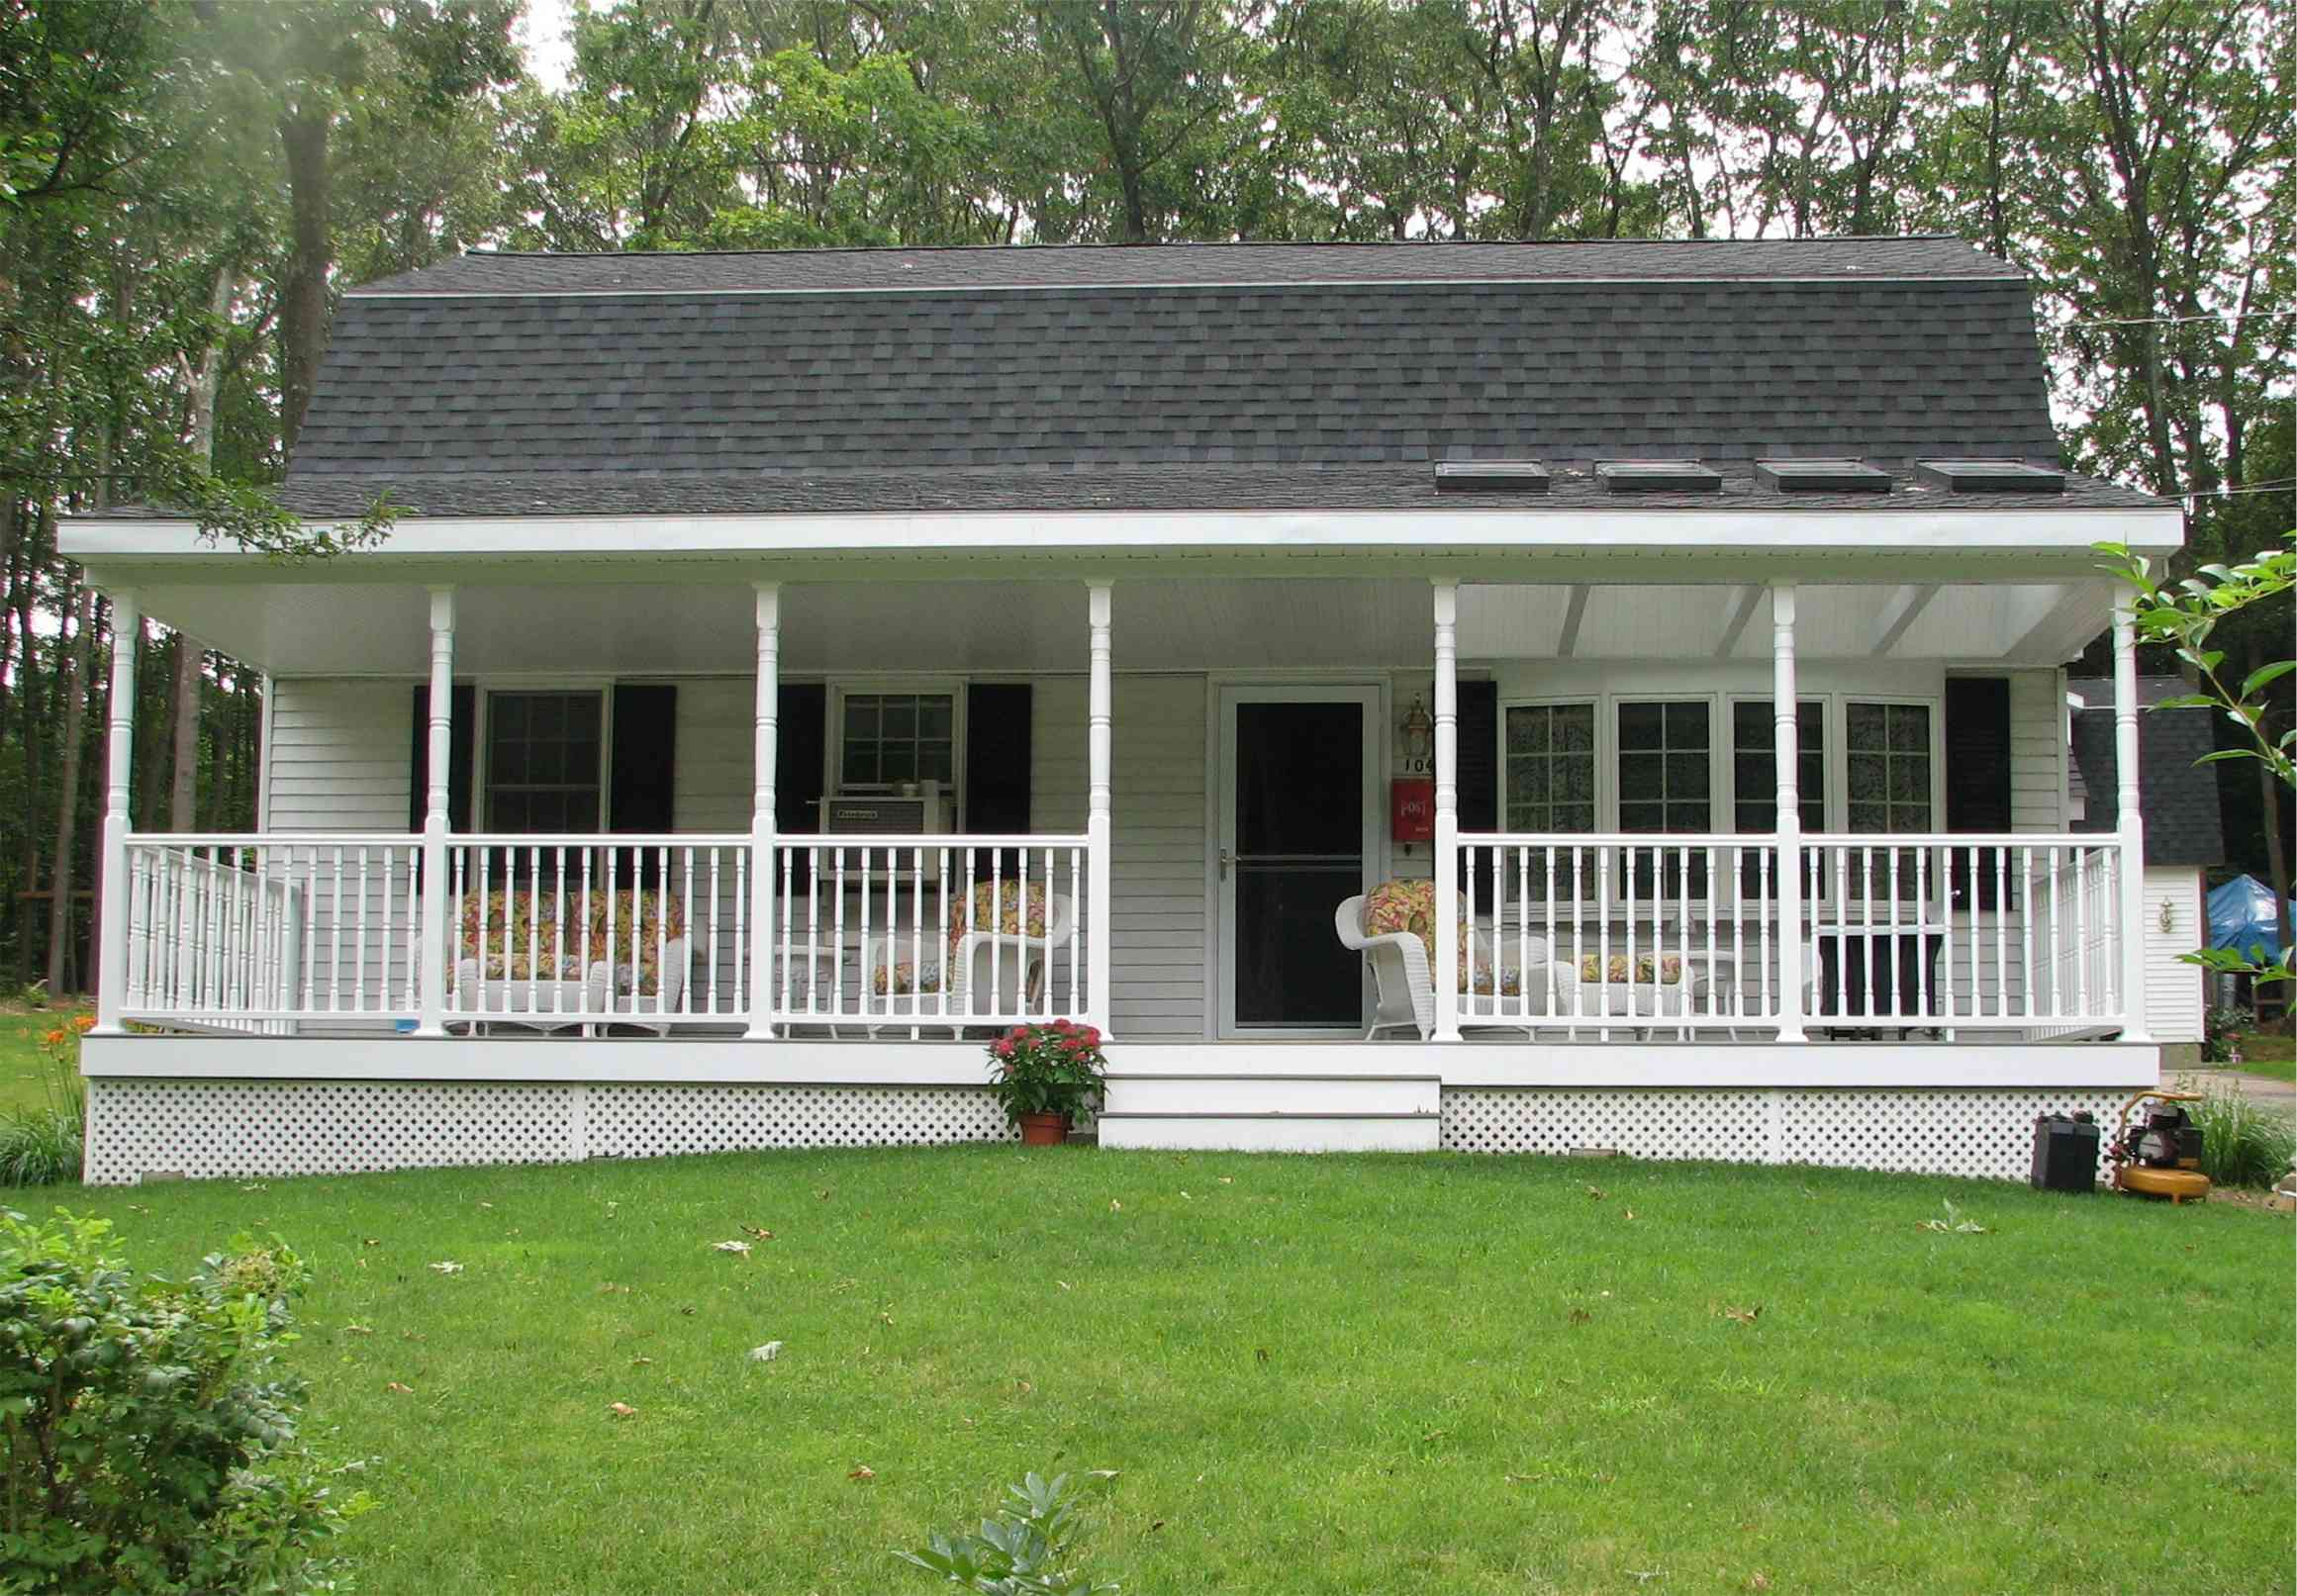 Home Partners - Deck or Porch?